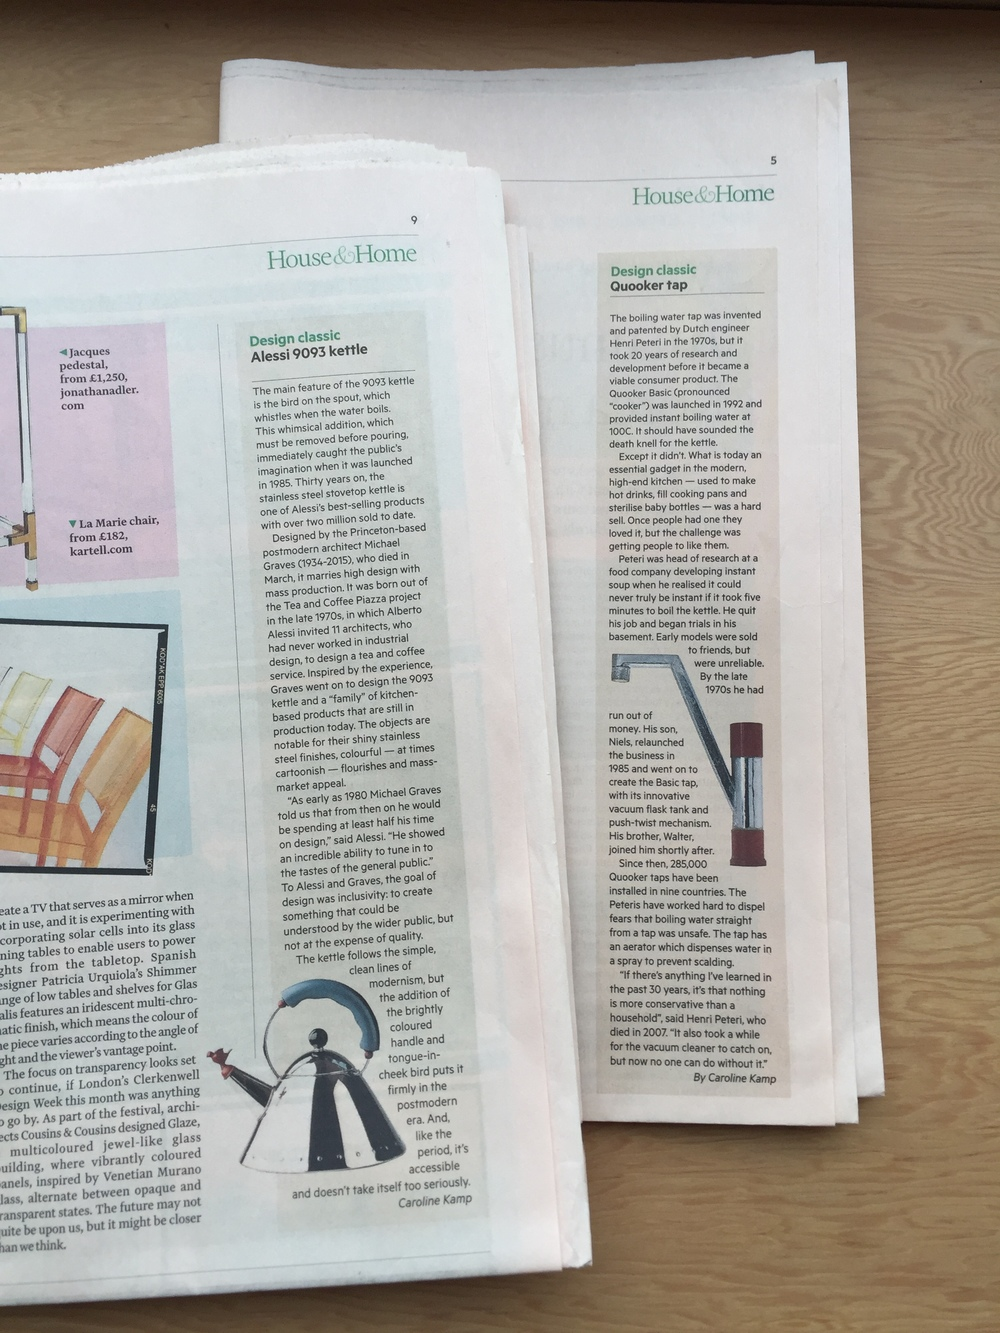 I've written a few Design Classics for The FT's House & Home.